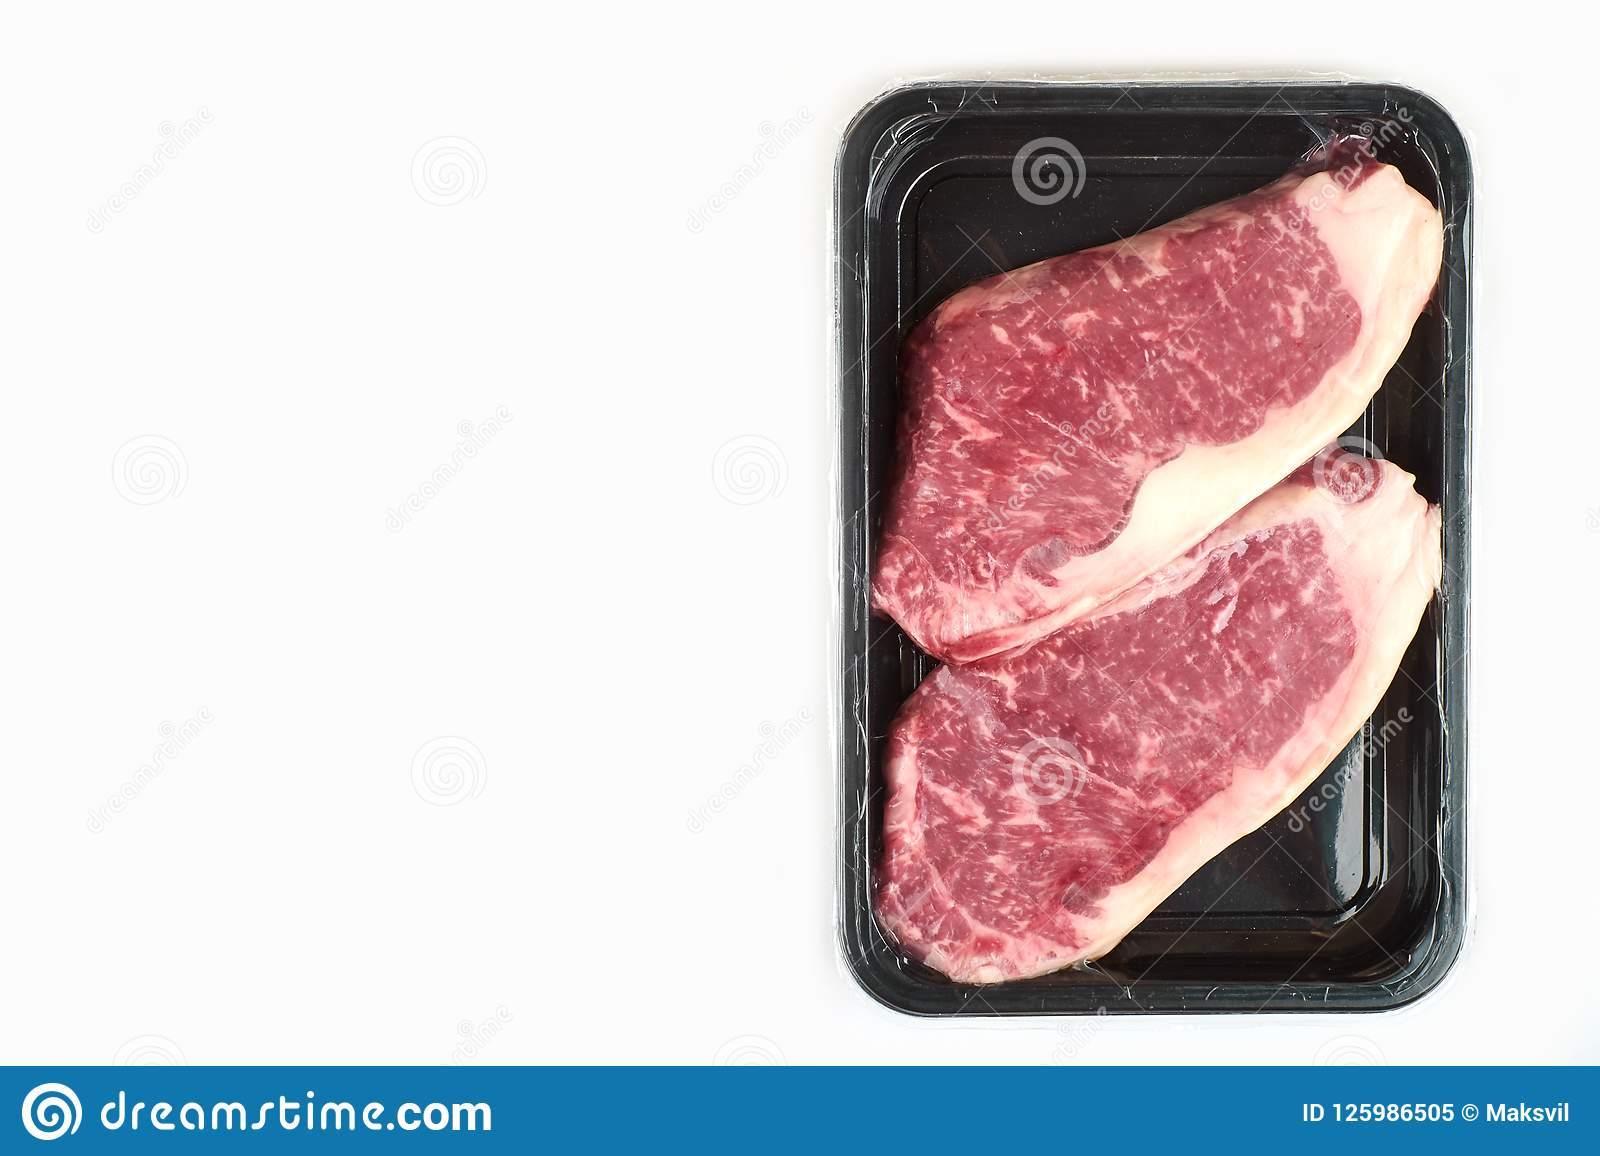 Raw steak in an airtight vacuum package on a white background.